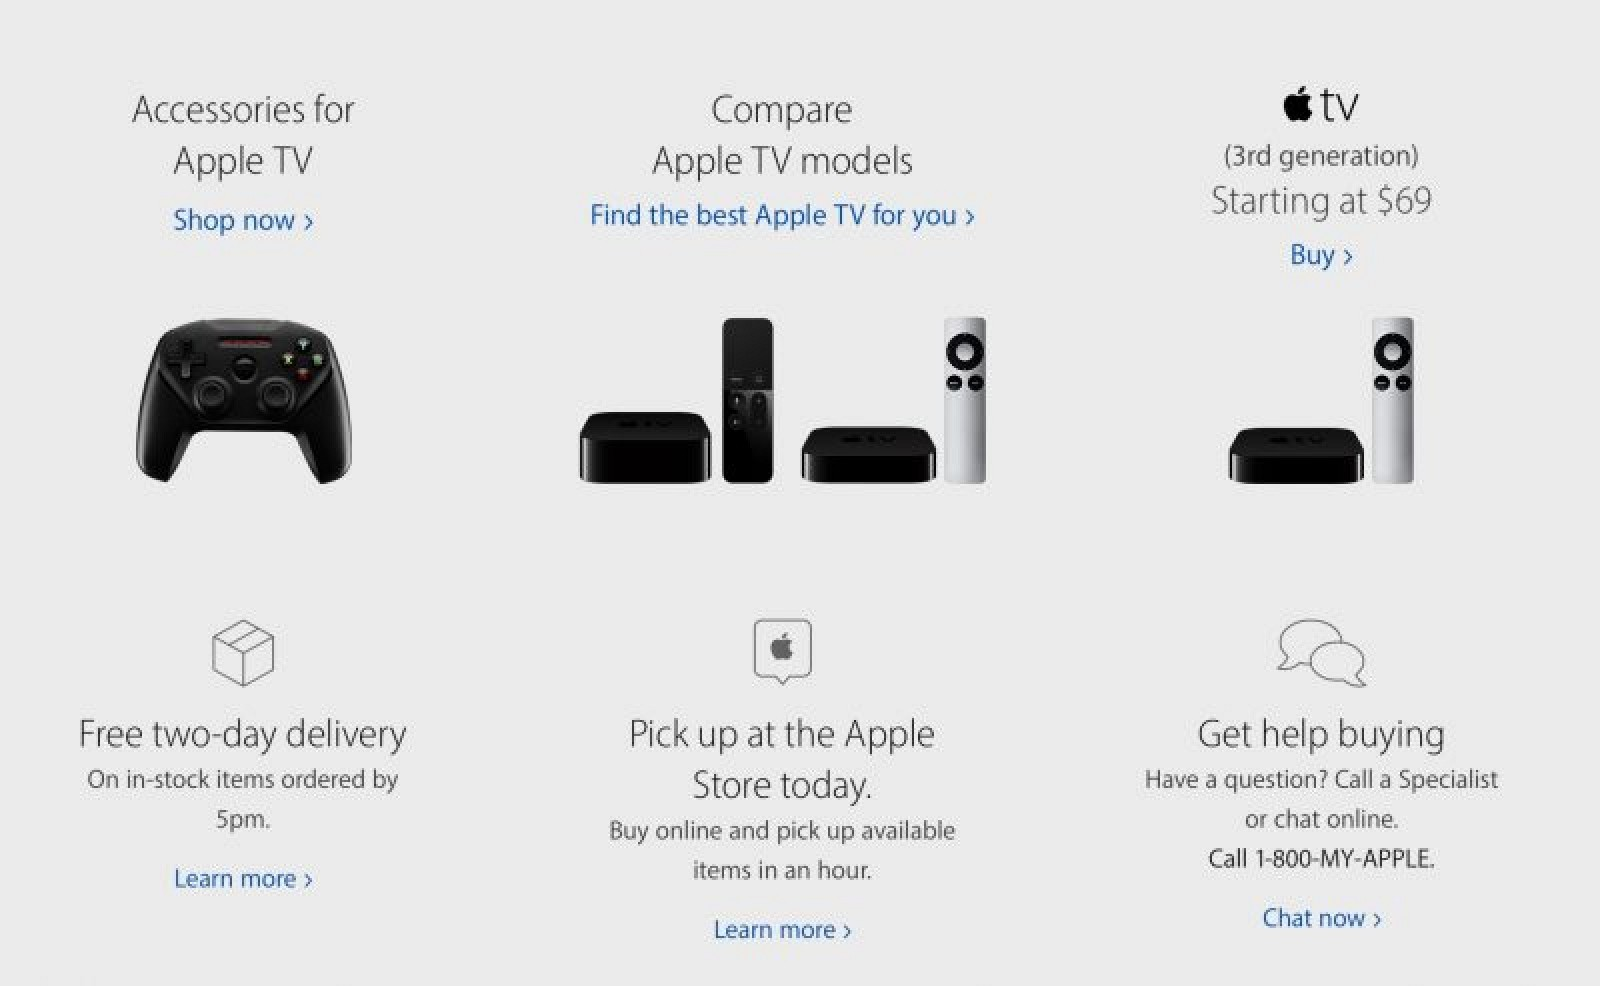 Apple Said to be Phasing Out Third-Generation Apple TV